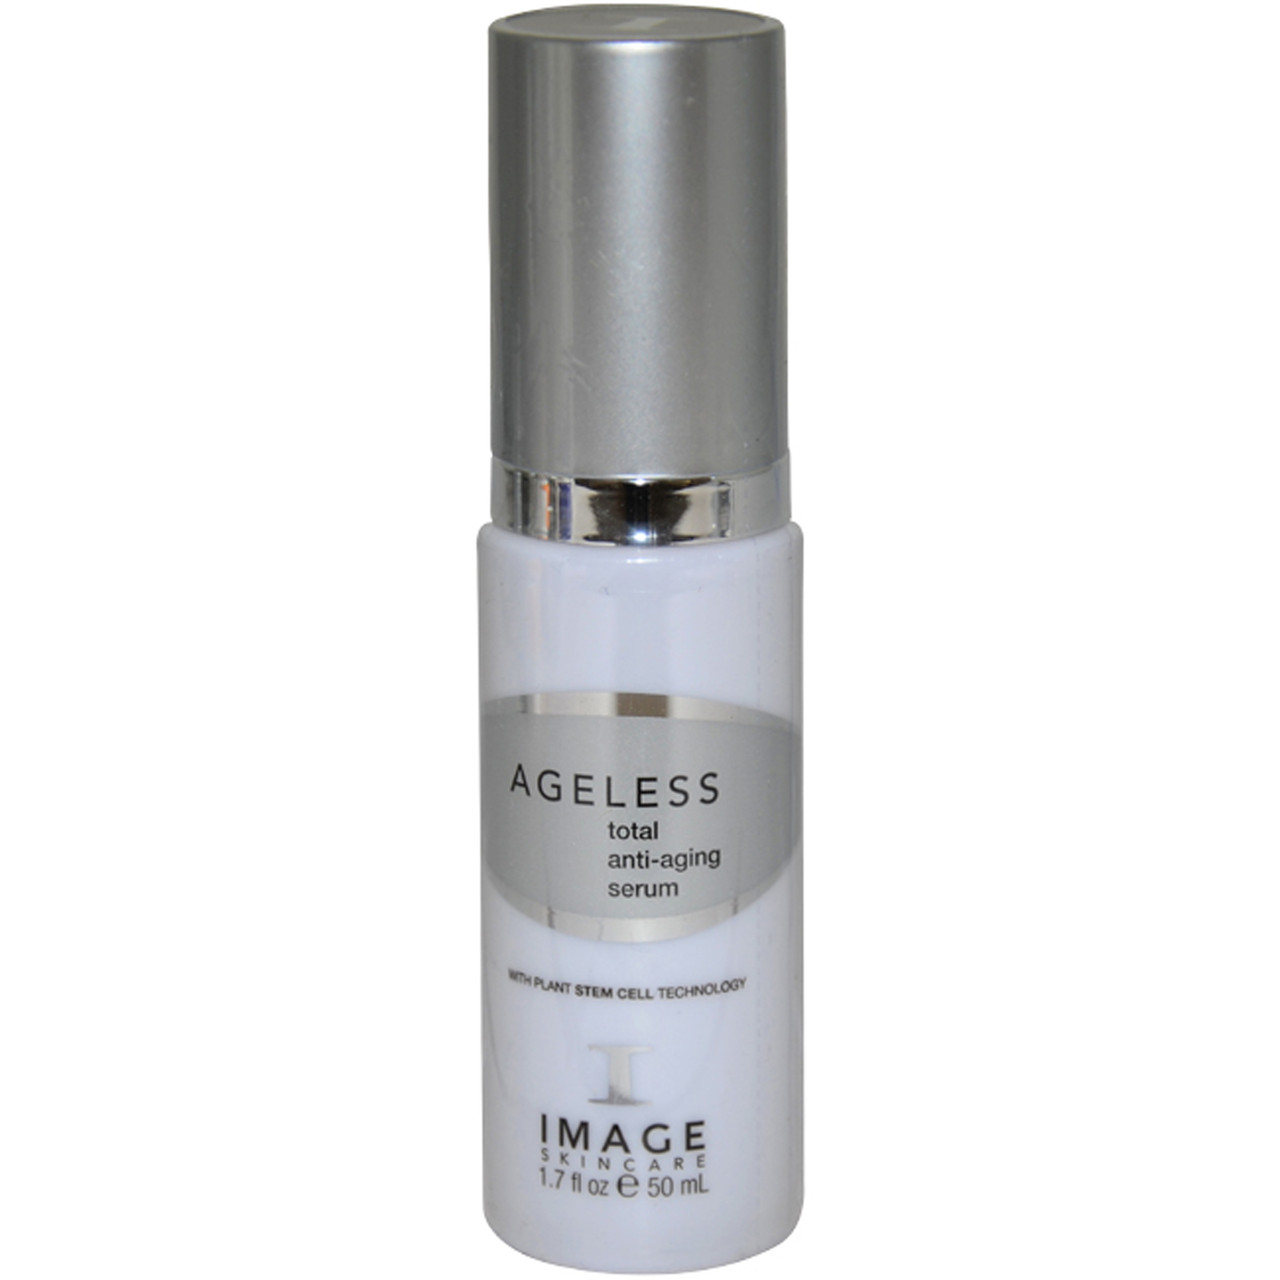 Ageless Total Anti Aging Serum with Stem Cell Technology by Image for Unisex - 1.7 oz Serum